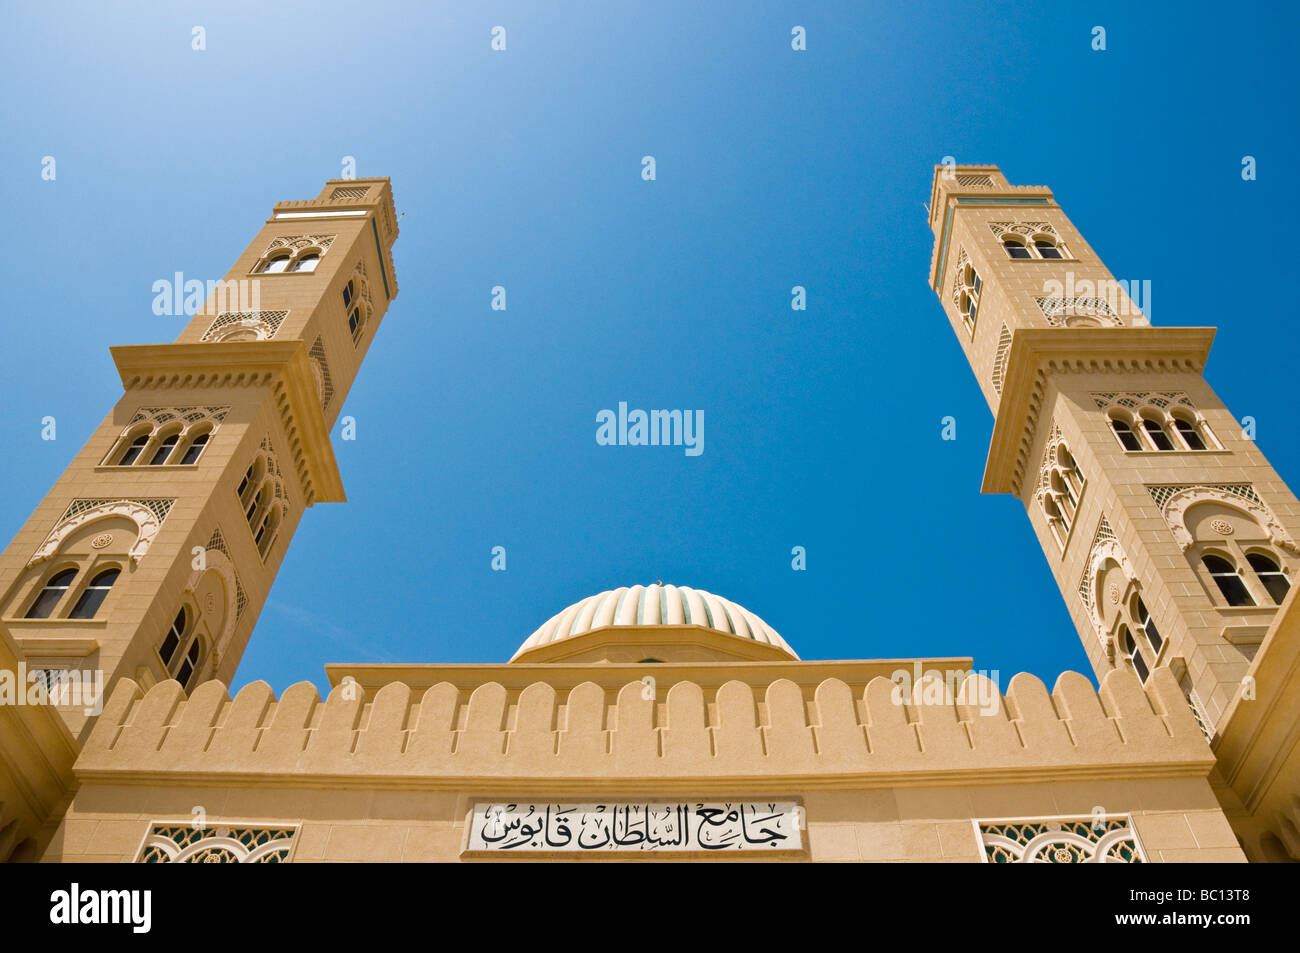 Sultans Qaboos mosque near Bahla sultanate of Oman - Stock Image